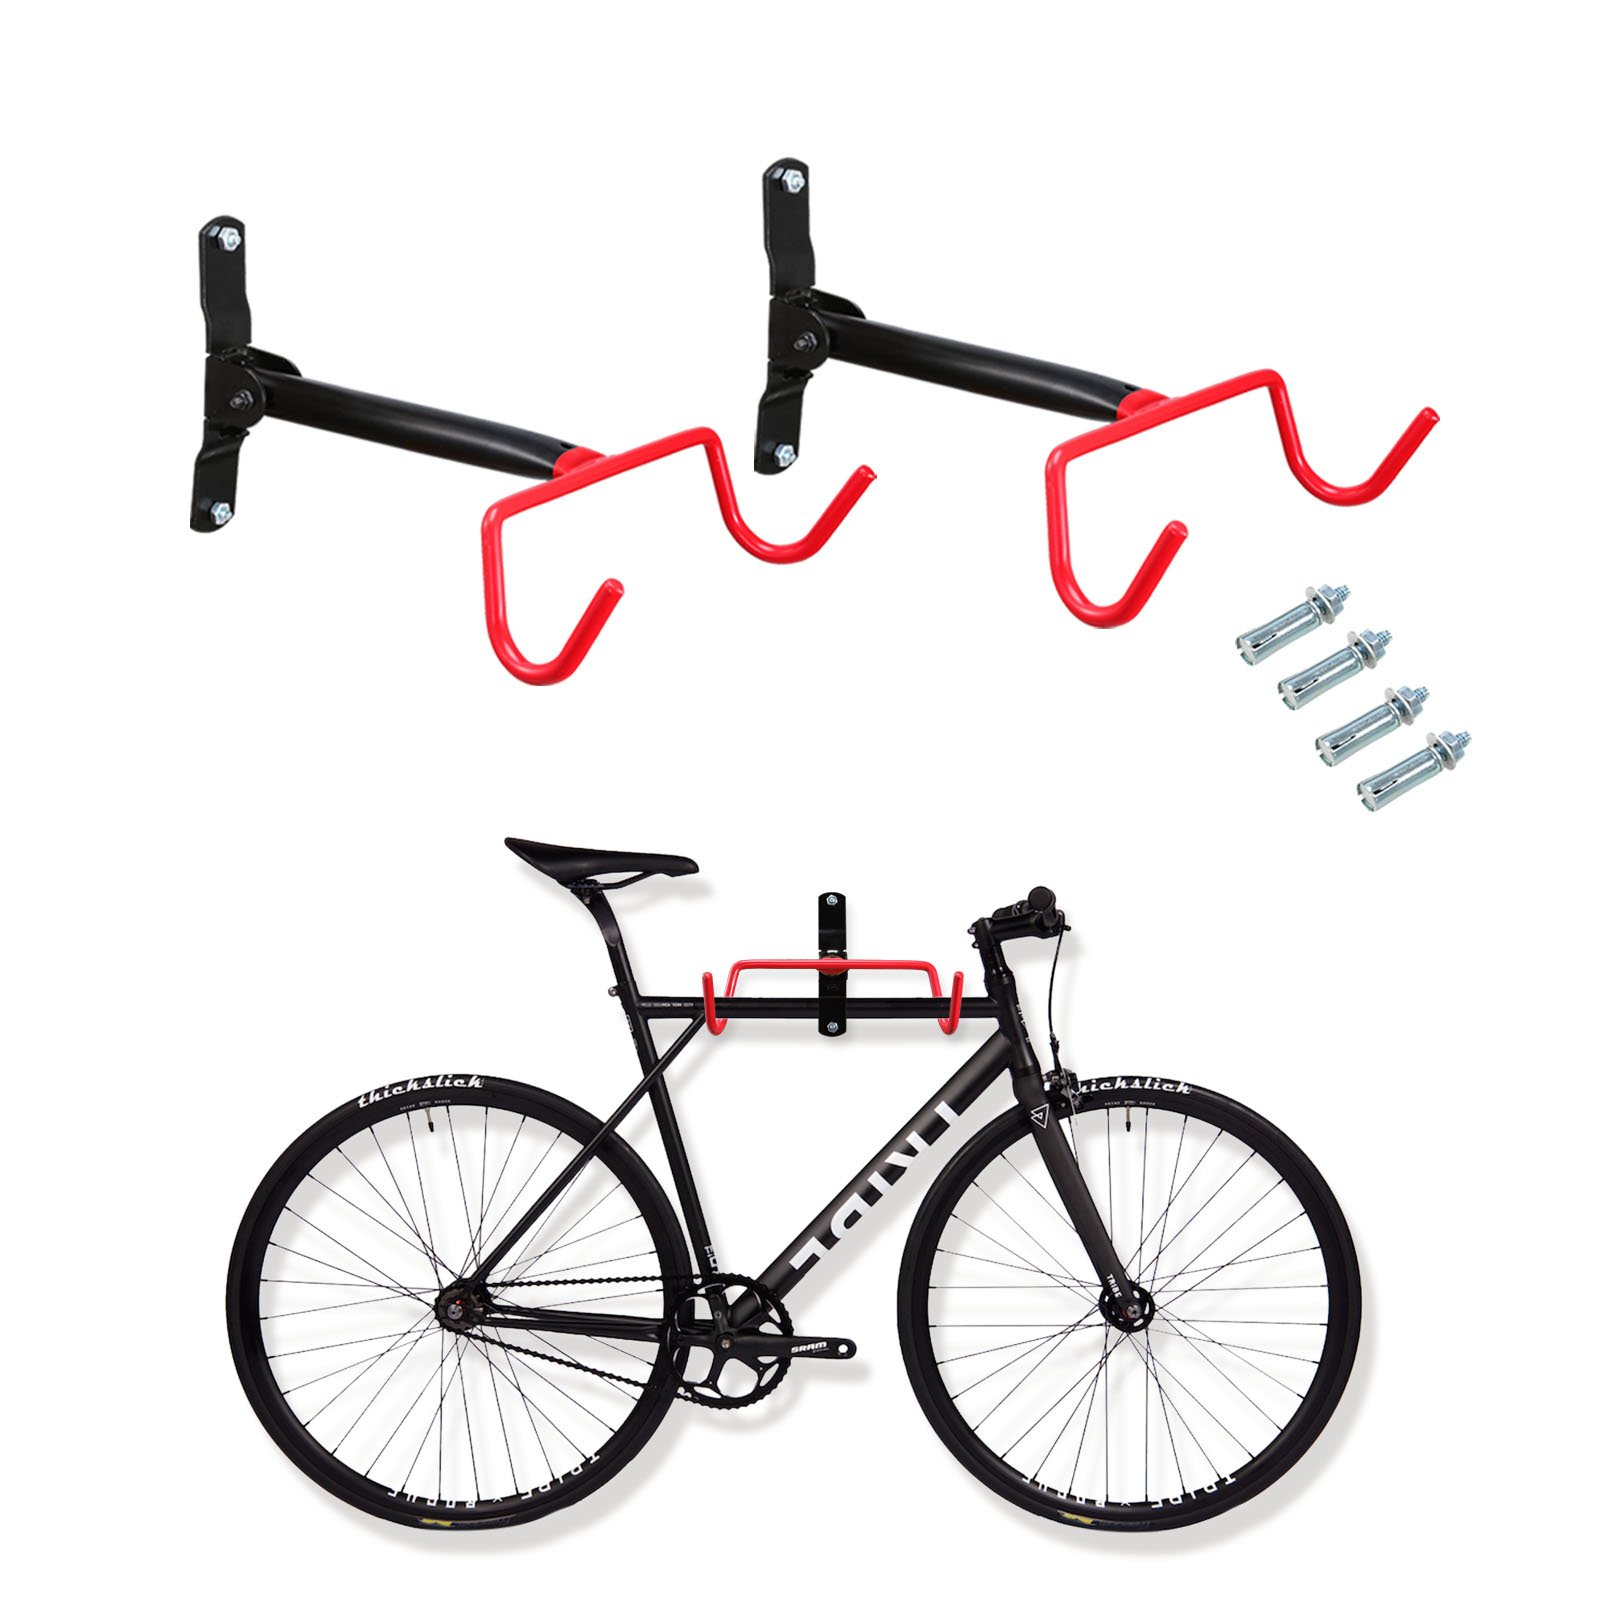 Voilamart Bike Wall Mount Hanger, 2pcs Indoor Storage Rack, Garage Bicycle Holder Hook Folding Space Saver with Screws, 66lb Max Capacity